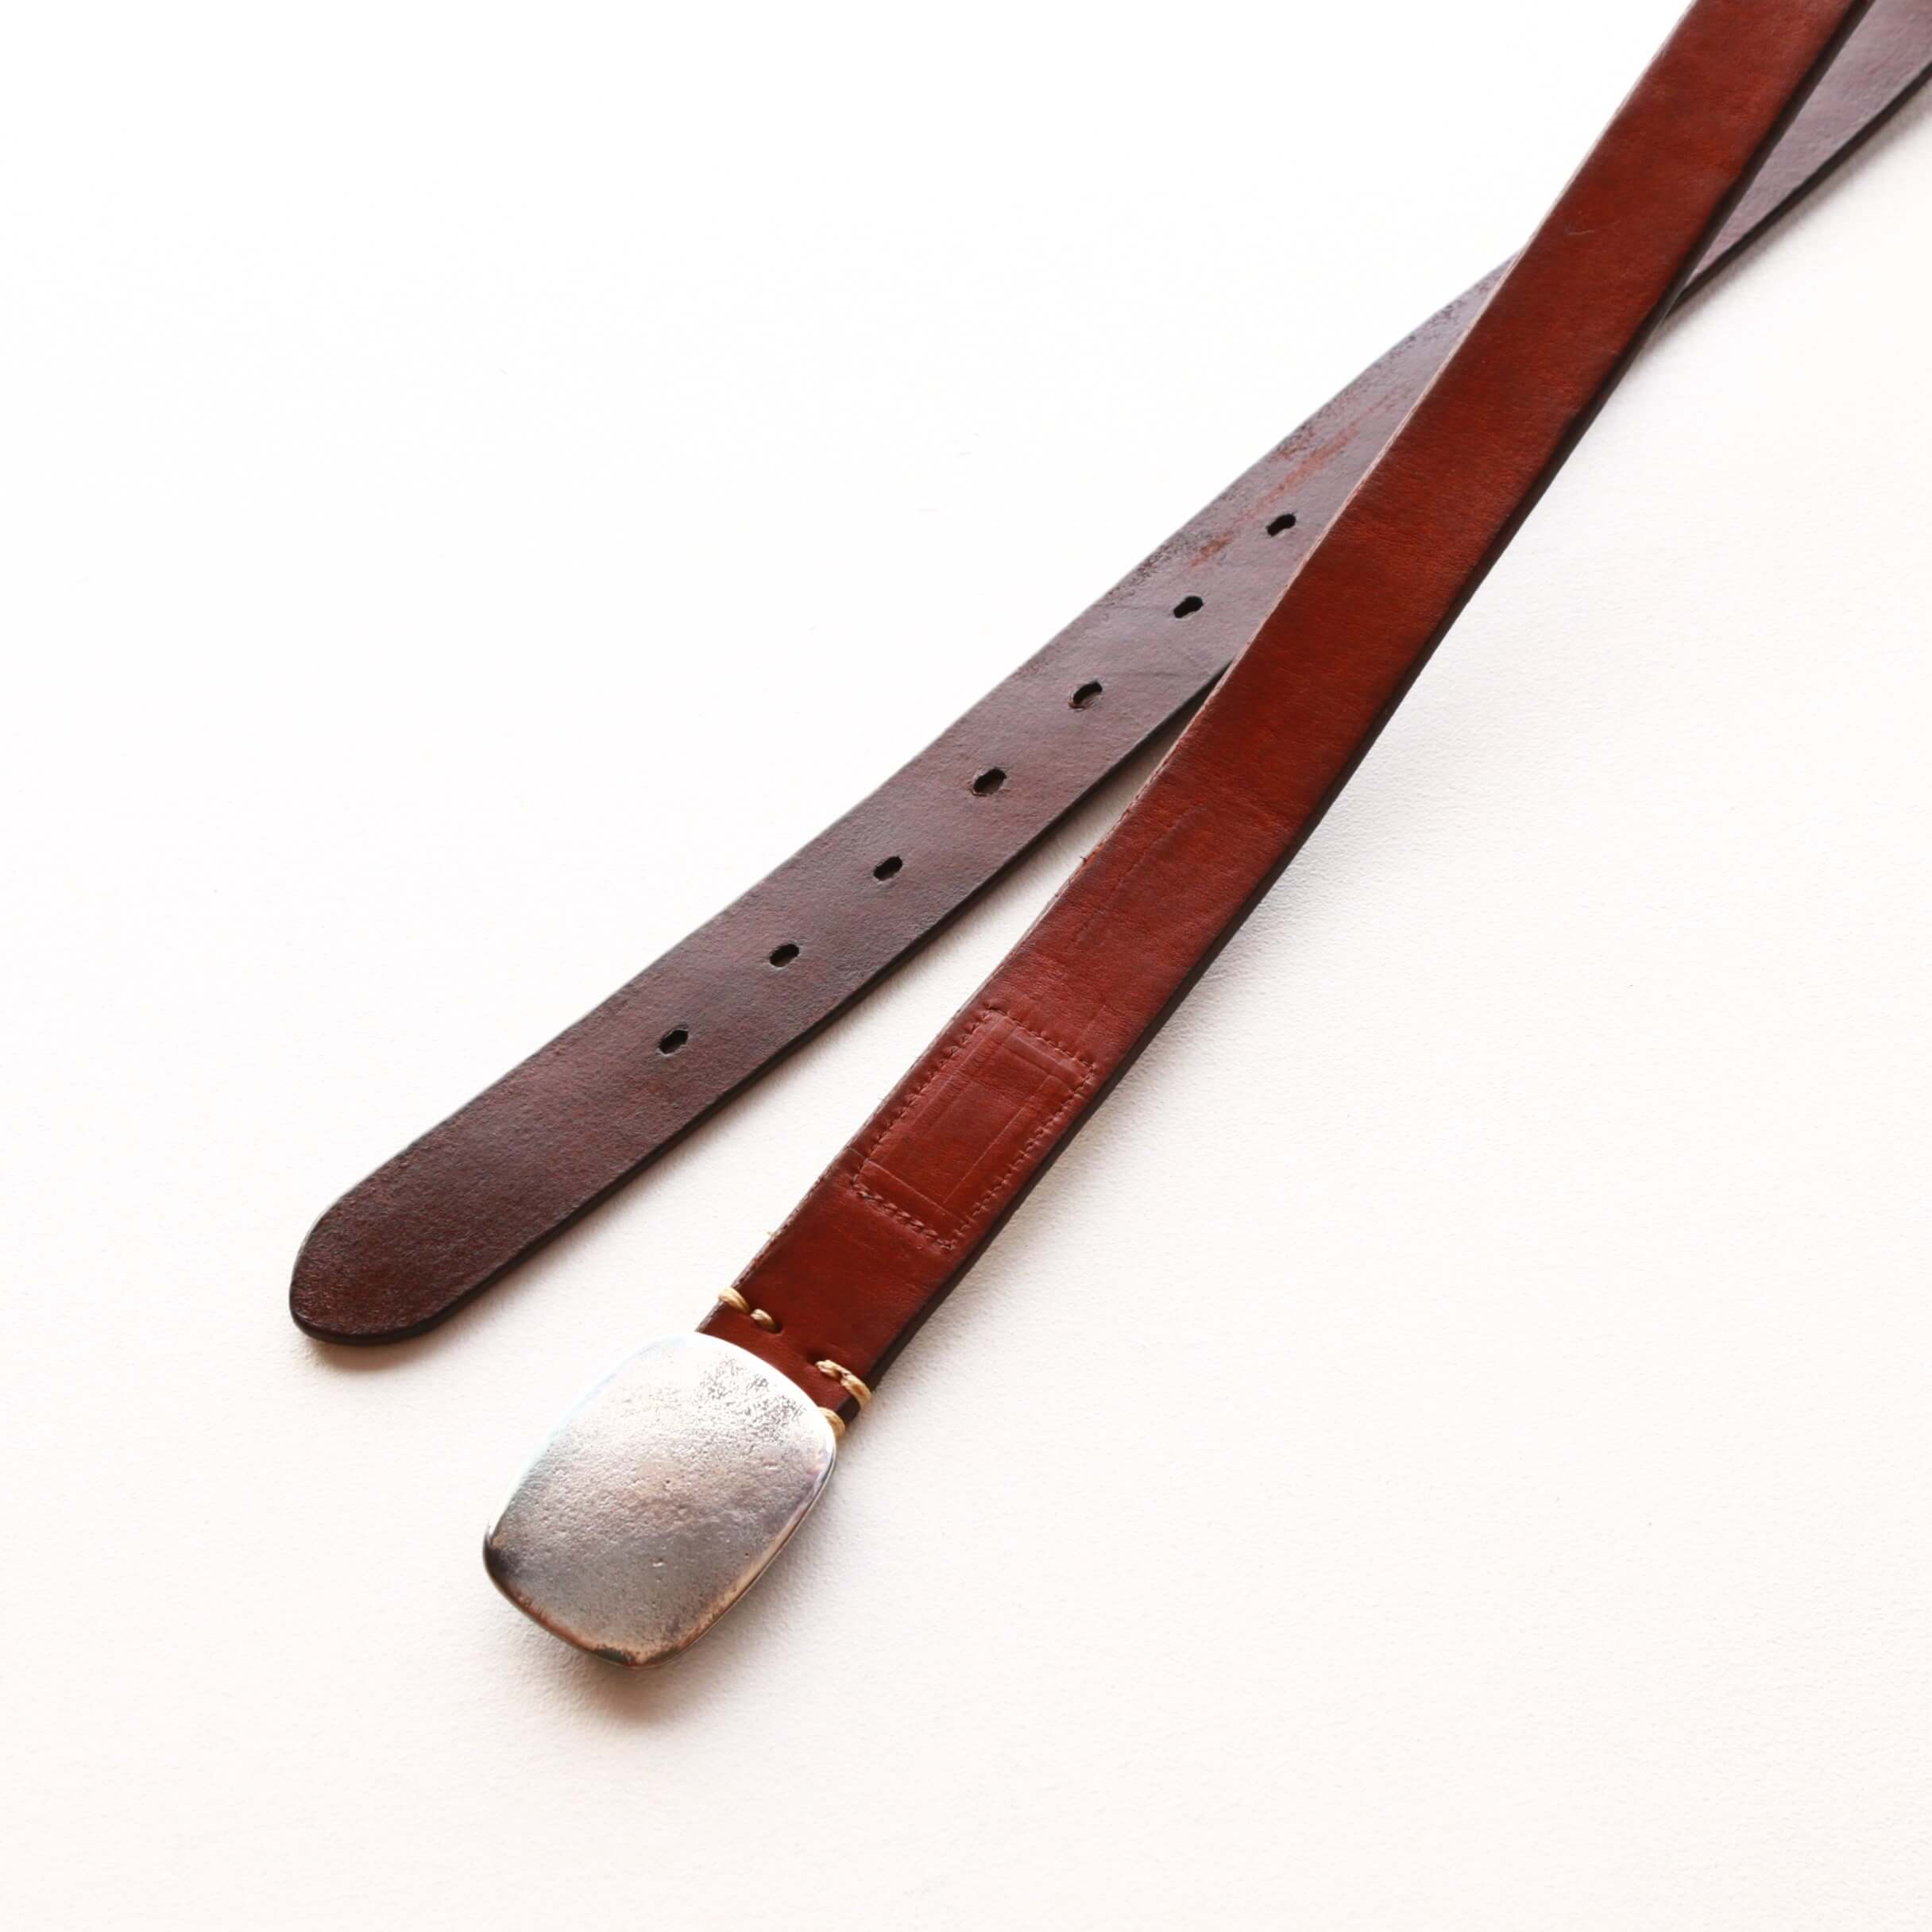 Vintage Works ヴィンテージワークス Leather belt レザーベルト DH5717